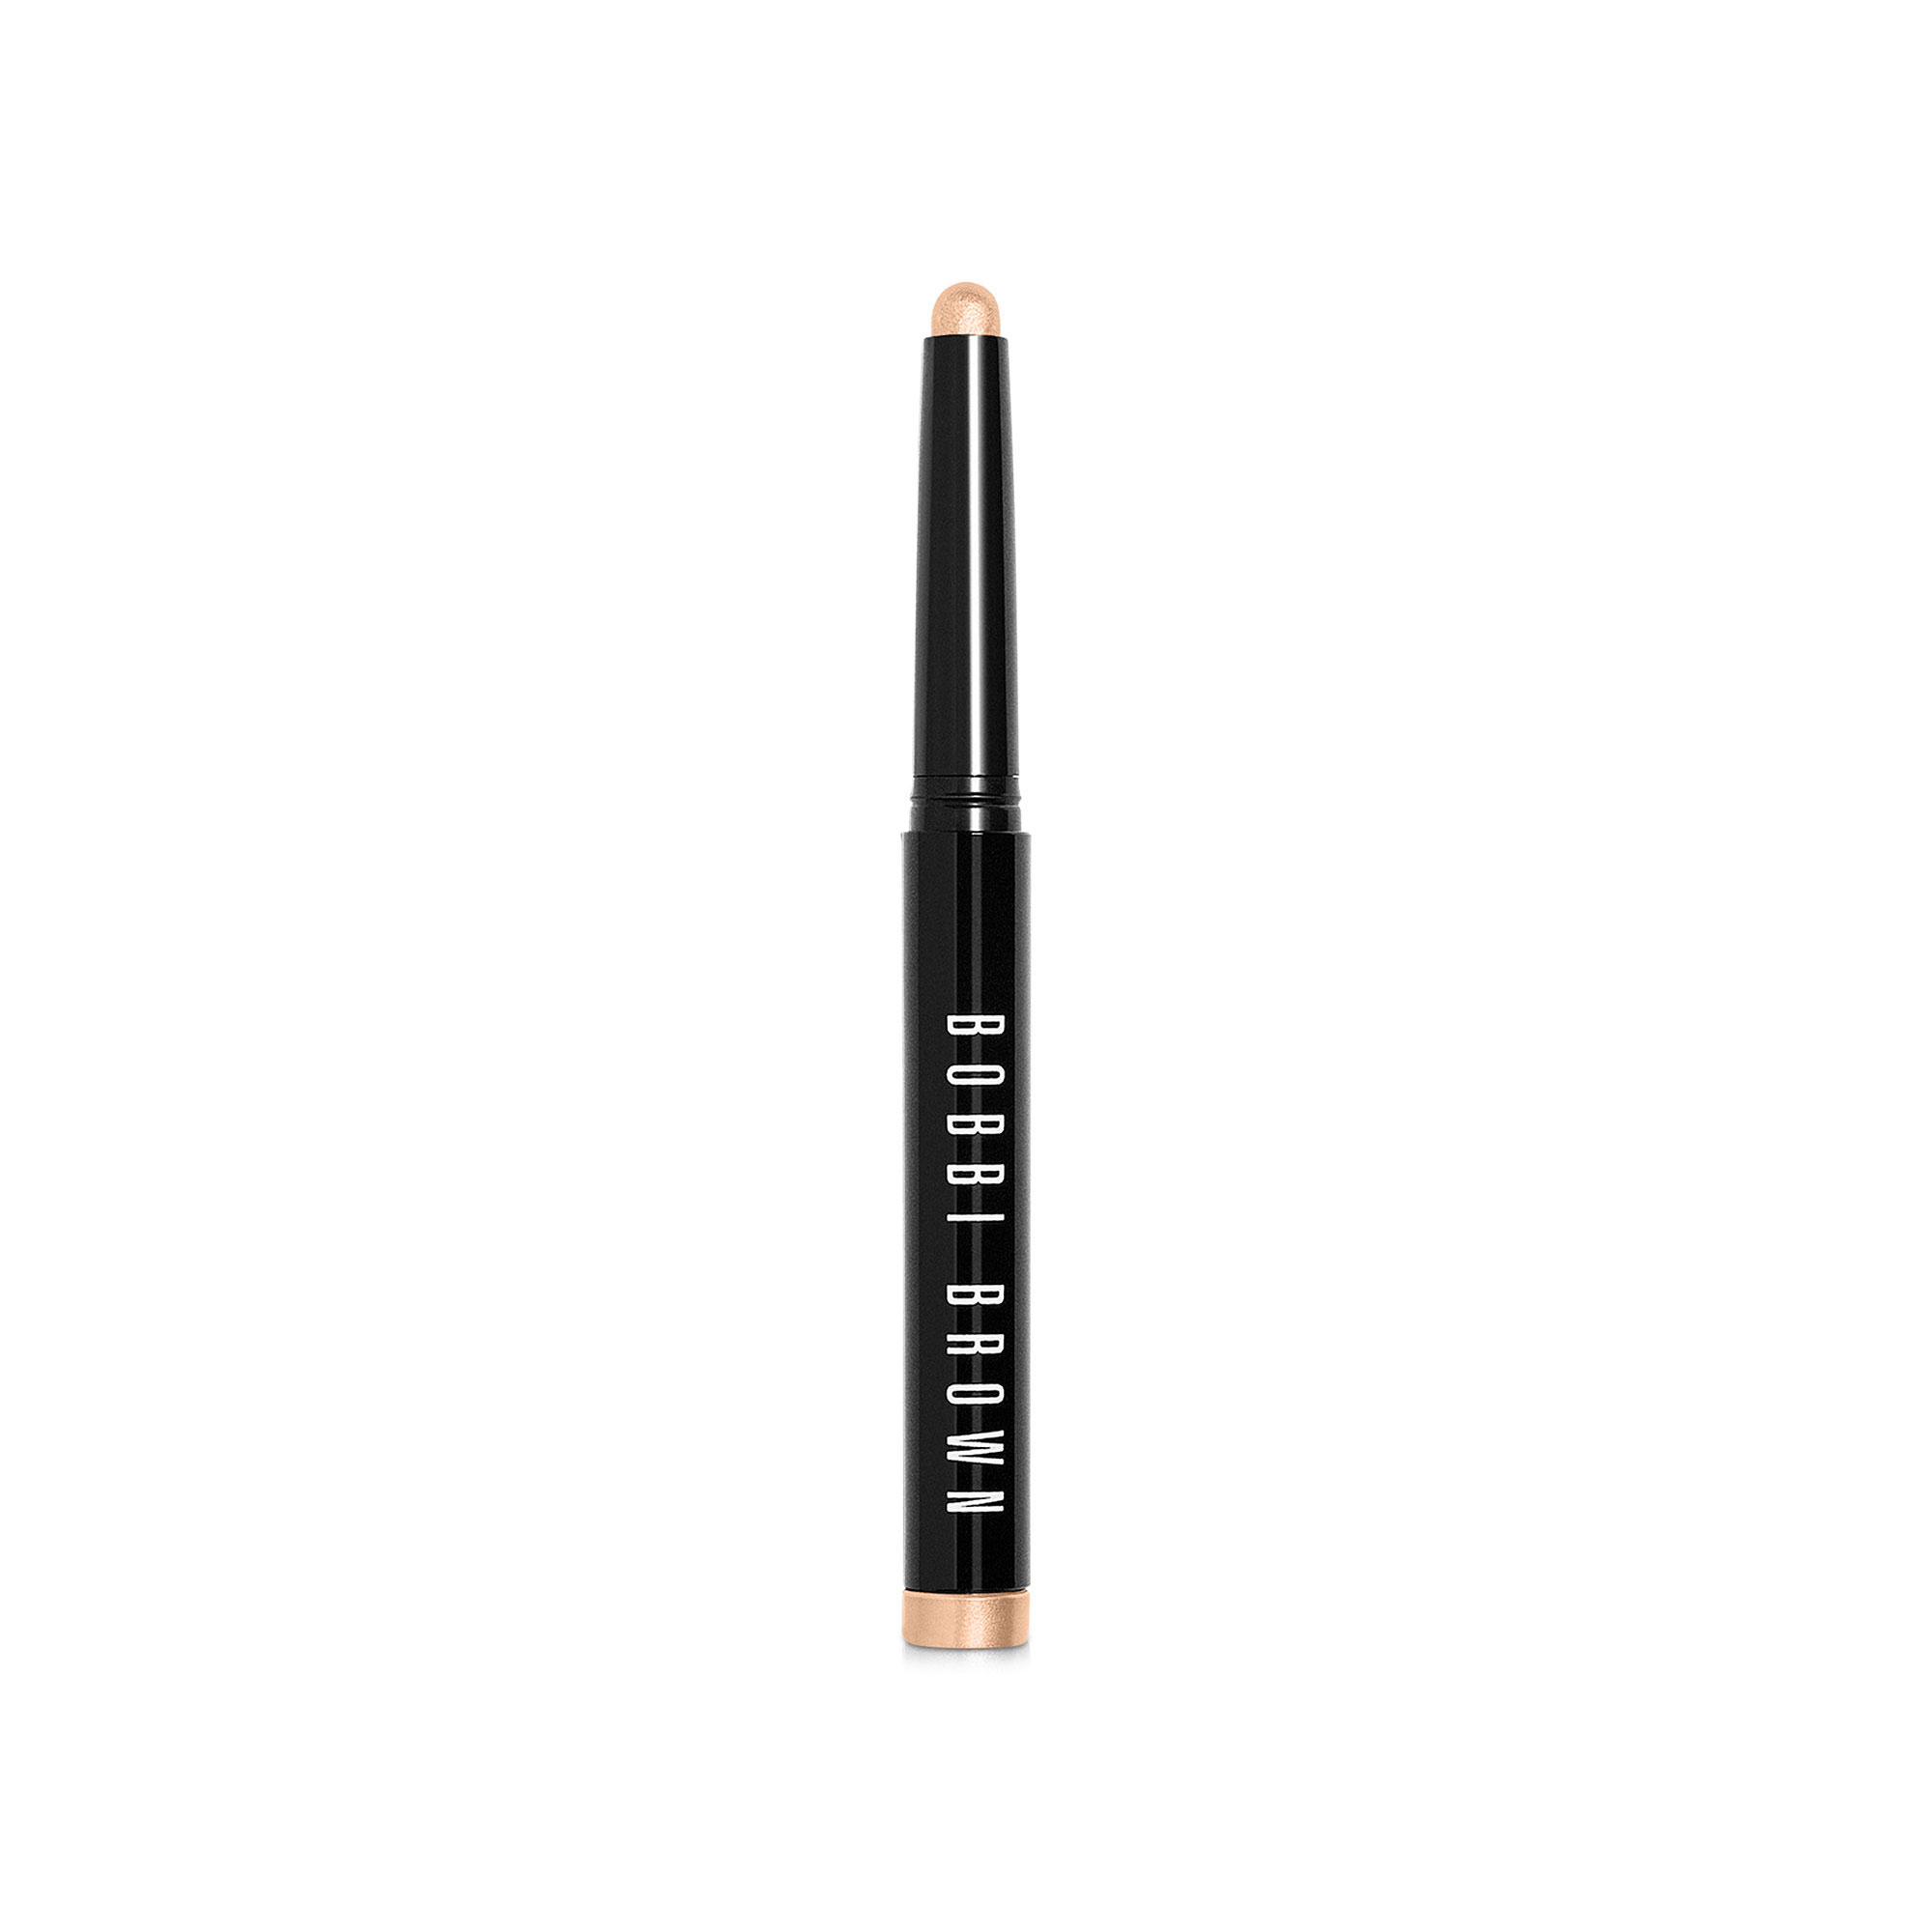 Bobbi Brown Long-Wear Cream Shadow Stick in Golden Pink